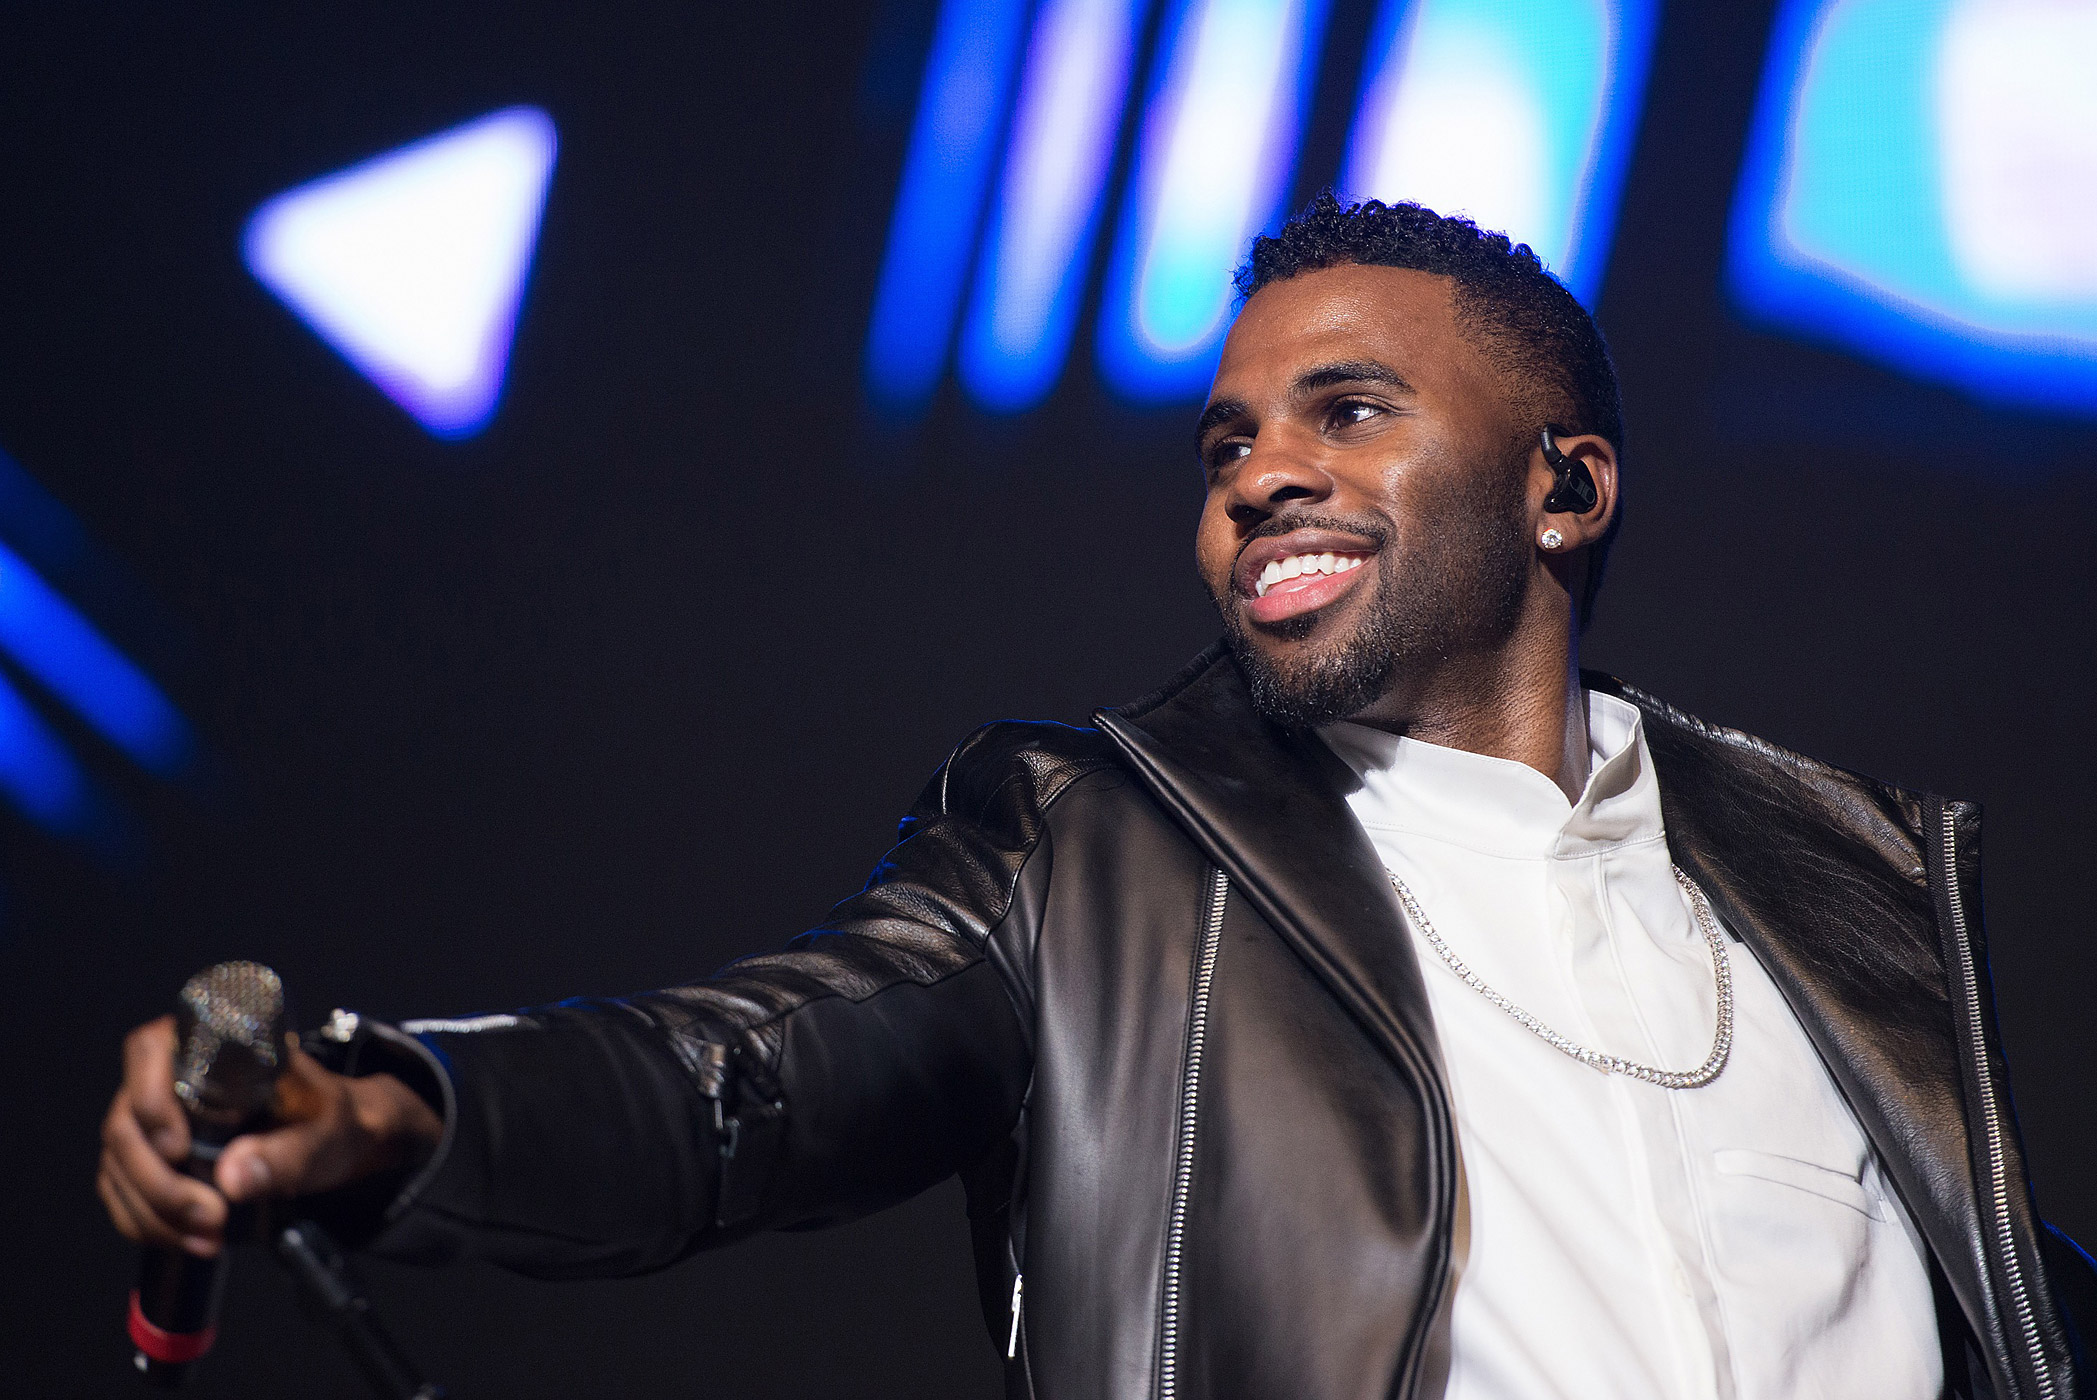 Jason Derulo performs during KTU's KTUphoria 2015 at the Nikon at Jones Beach Theater on May 31, 2015 in Wantagh, NY.